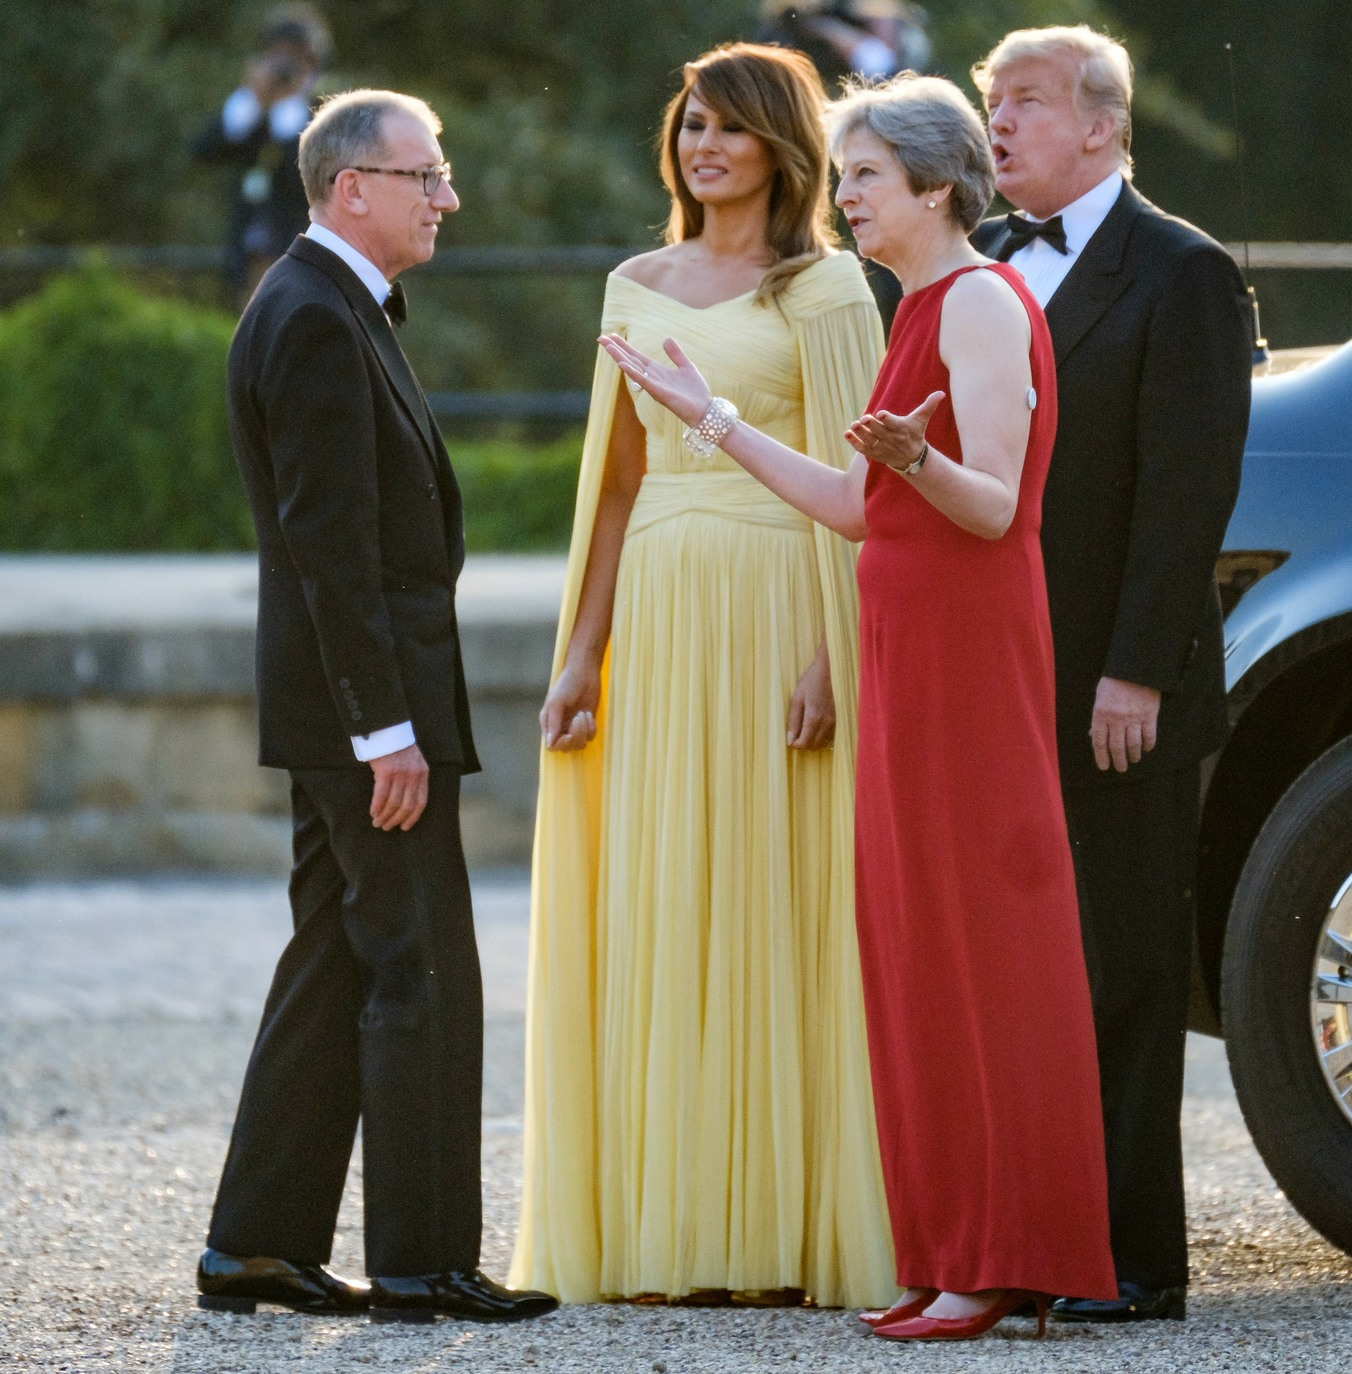 President of the United States Donald Trump visits the United Kingdom